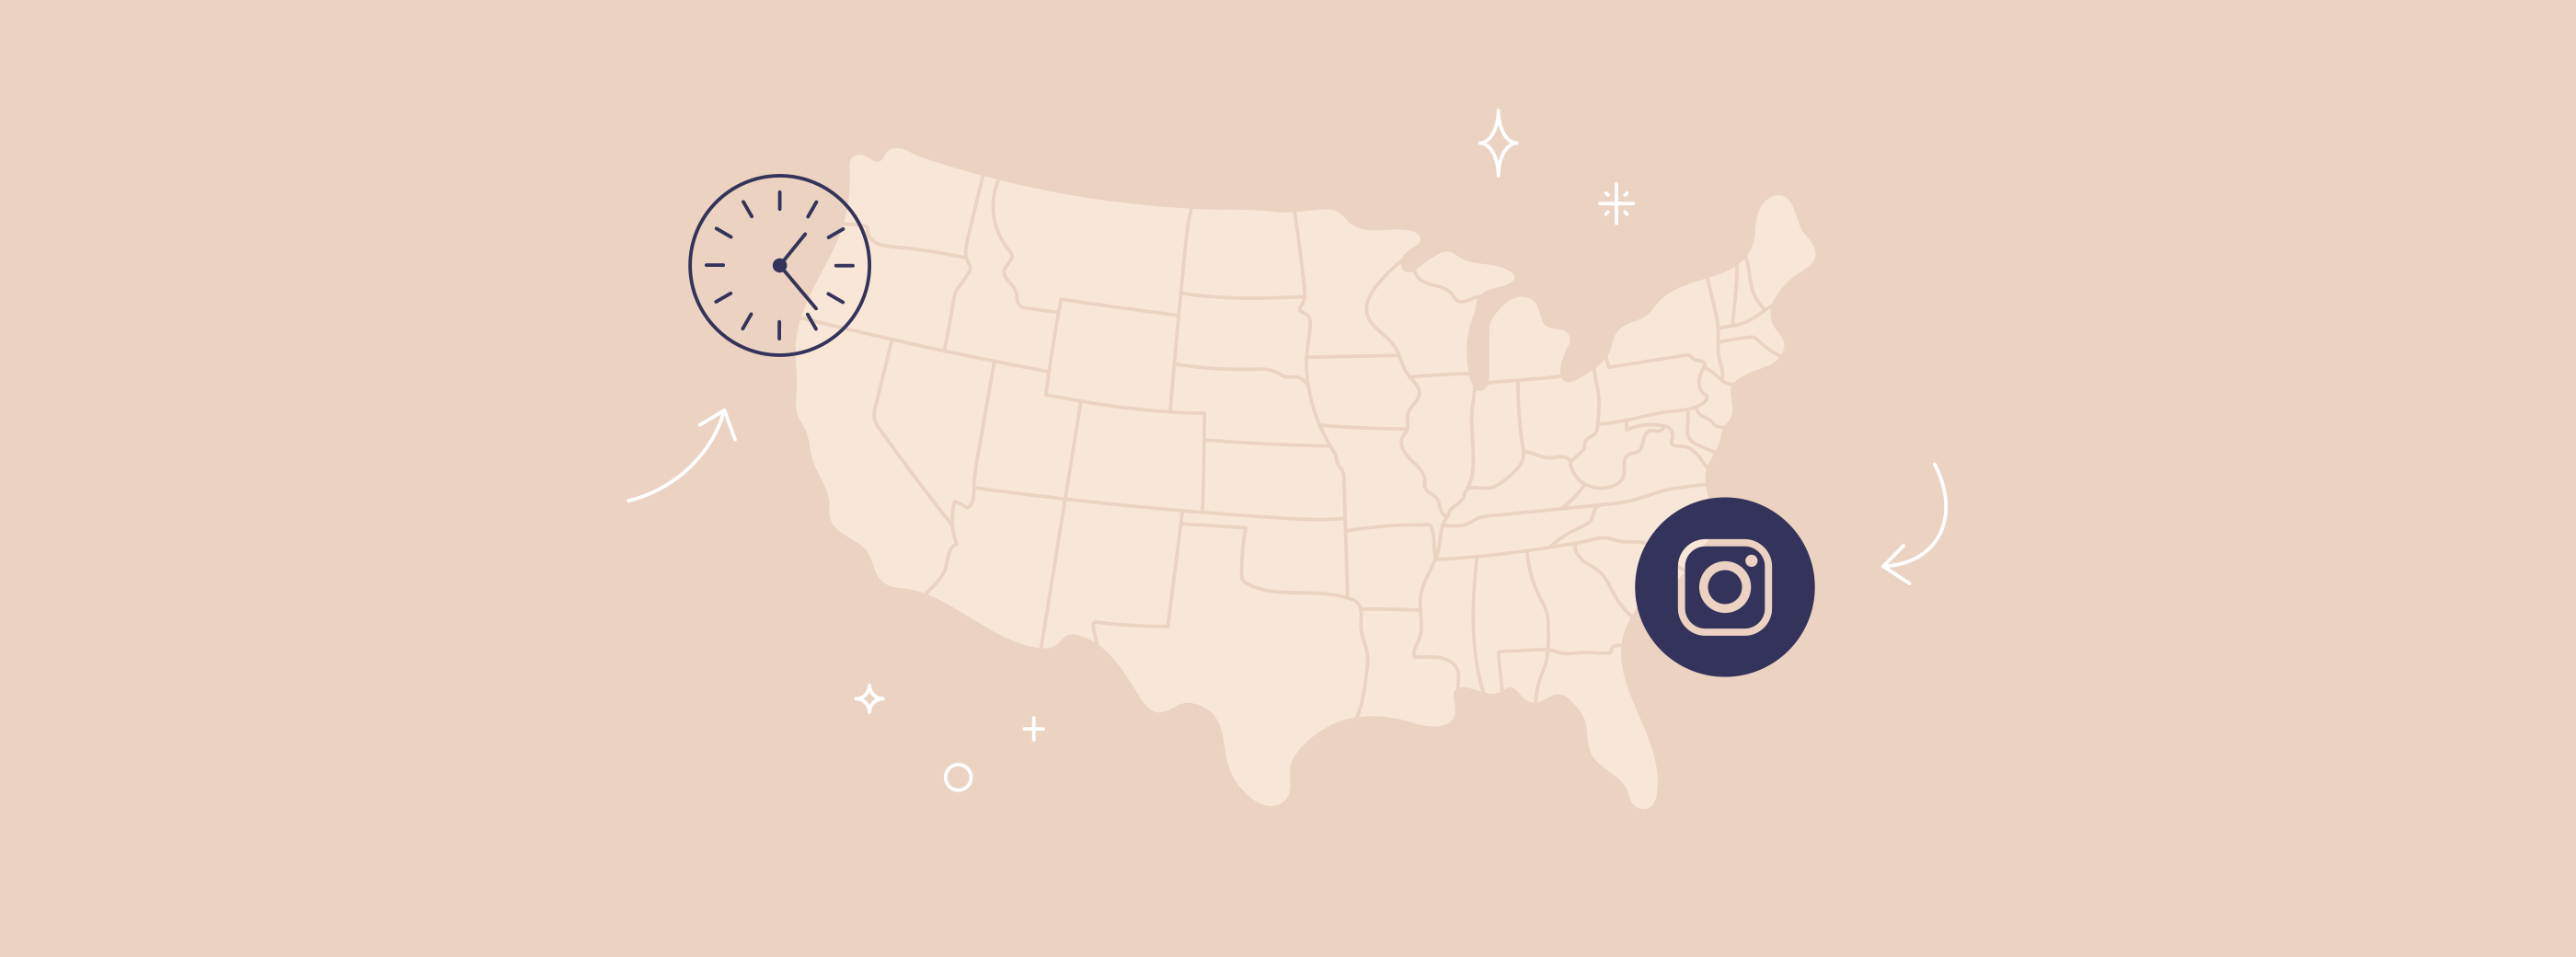 Read about When's the Best Time to Post on Instagram?, on PLANOLY